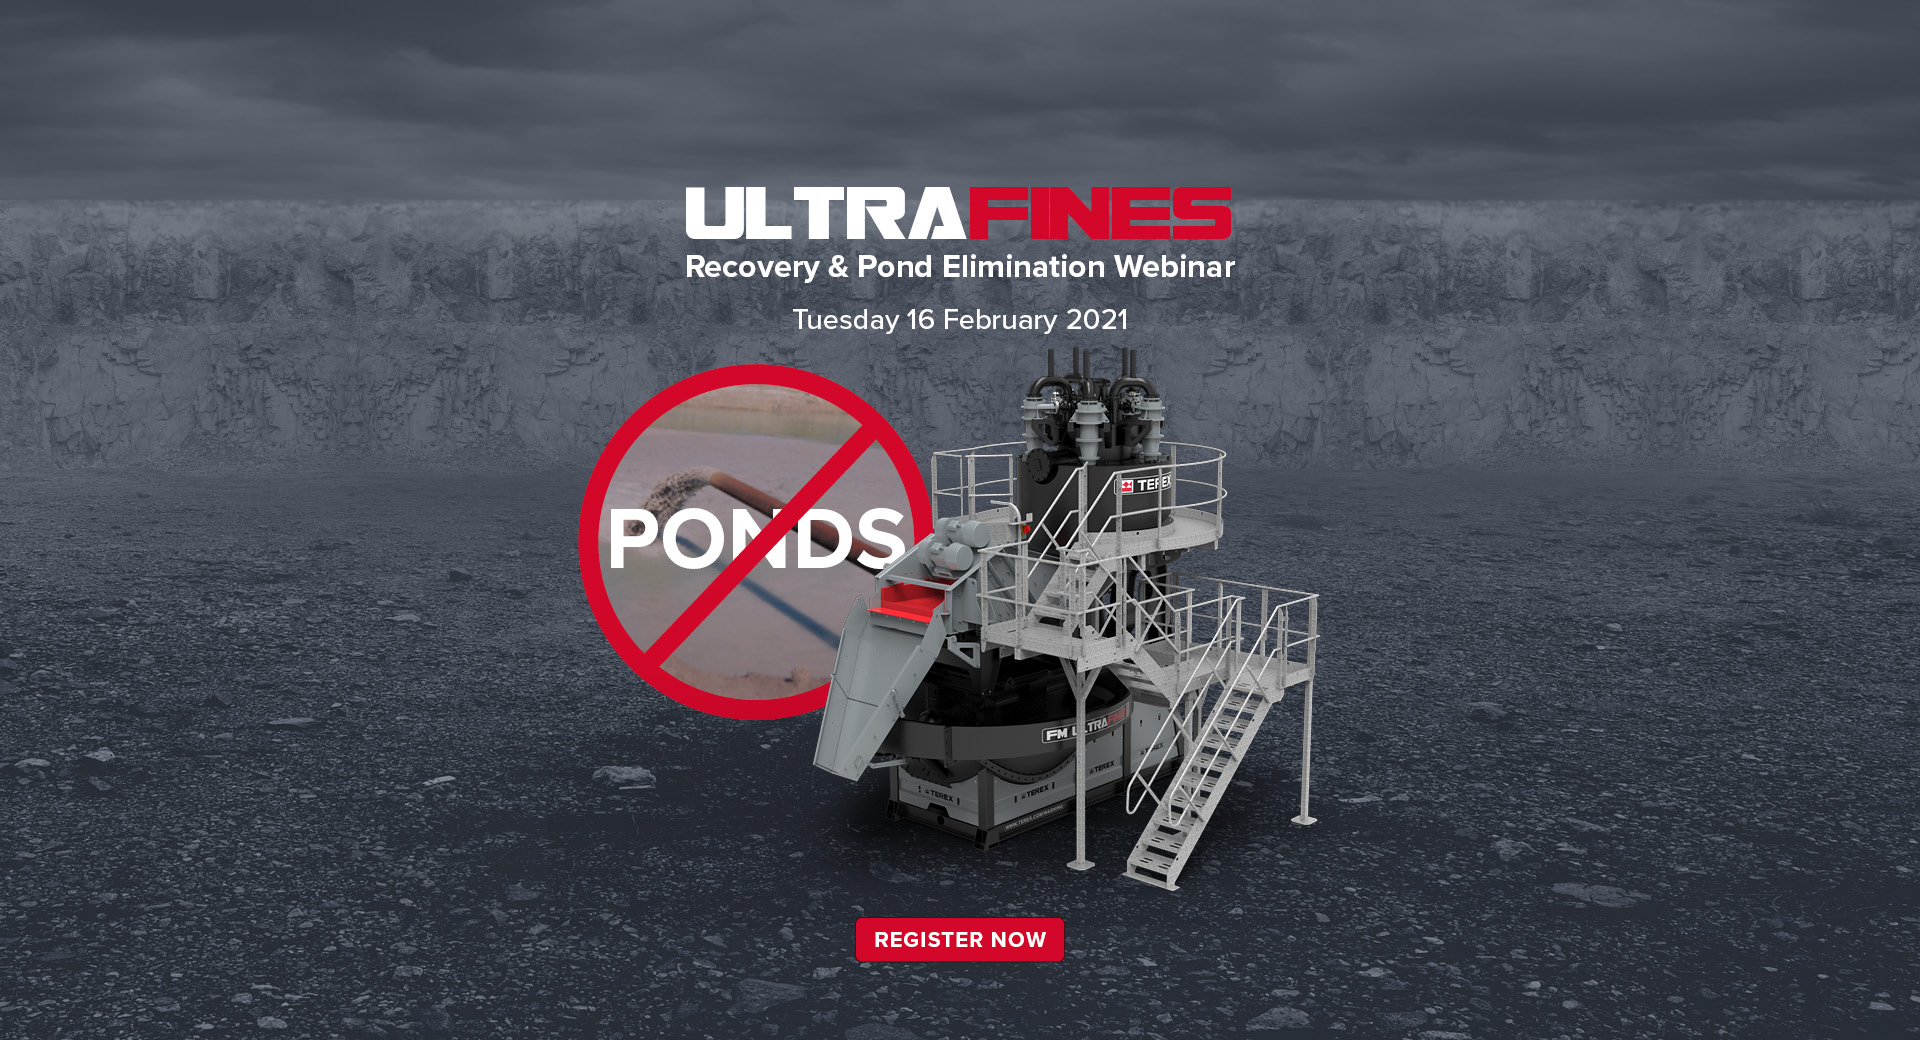 Ulstra Fines Recovery And Pond Elimination Webinar